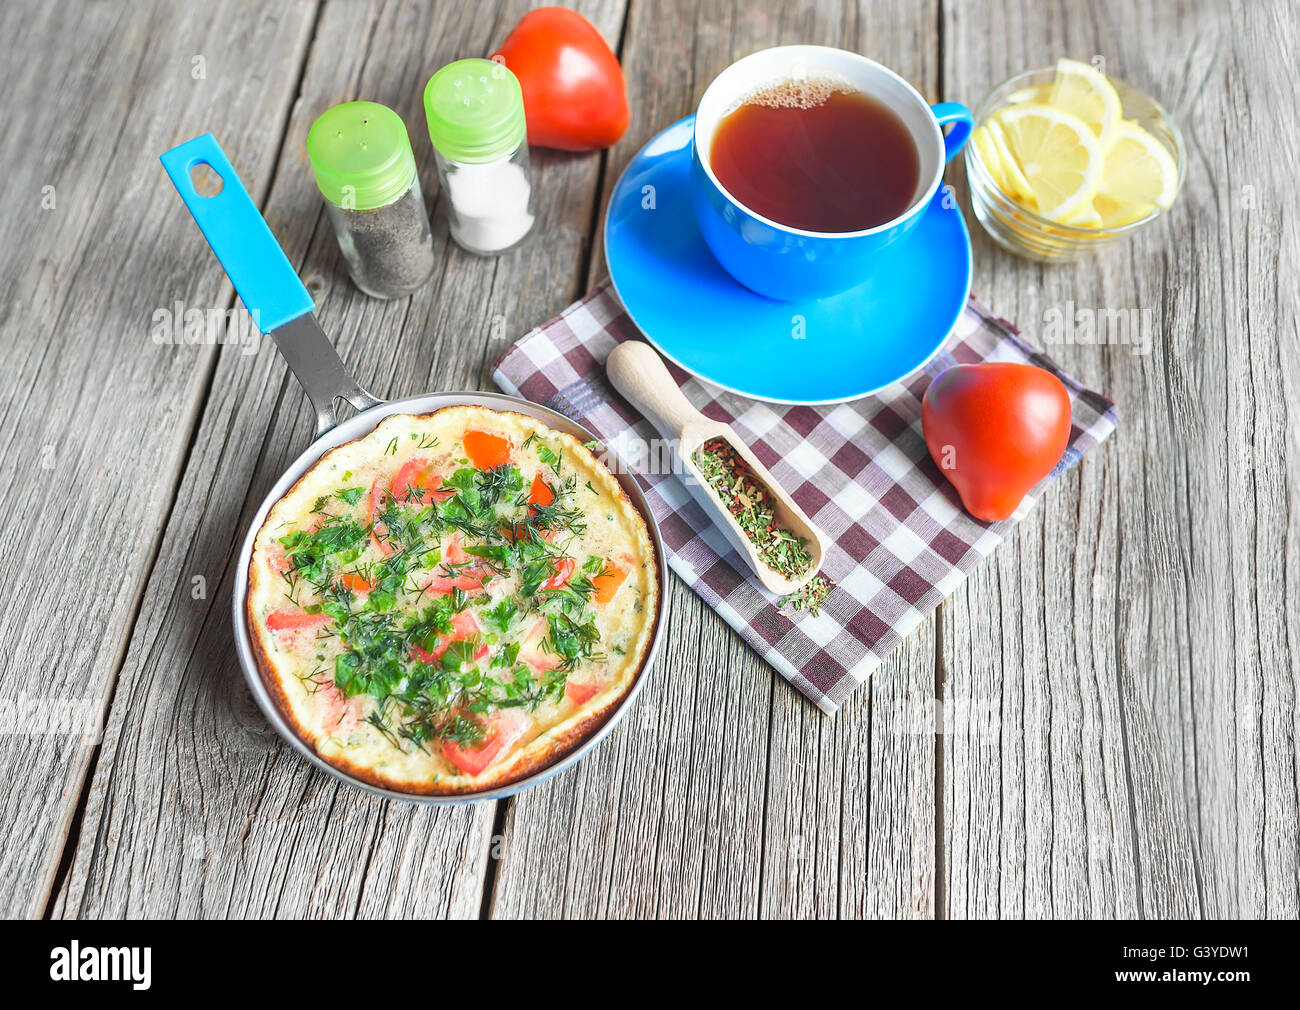 Omelet with vegetables in a frying pan on a wooden table. - Stock Image